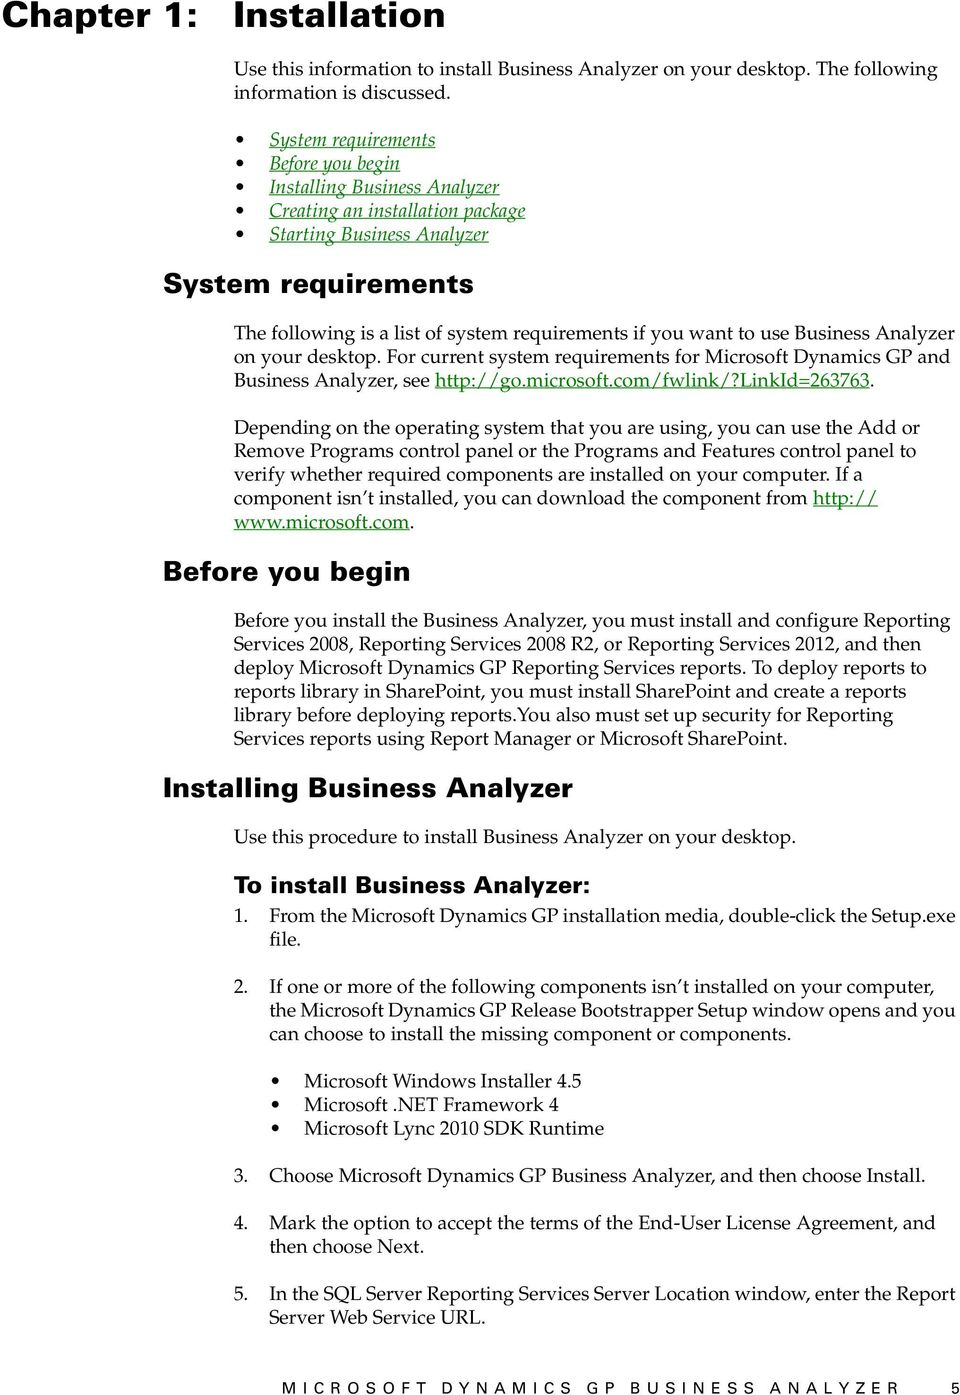 want to use Business Analyzer on your desktop. For current system requirements for Microsoft Dynamics GP and Business Analyzer, see http://go.microsoft.com/fwlink/?linkid=263763.